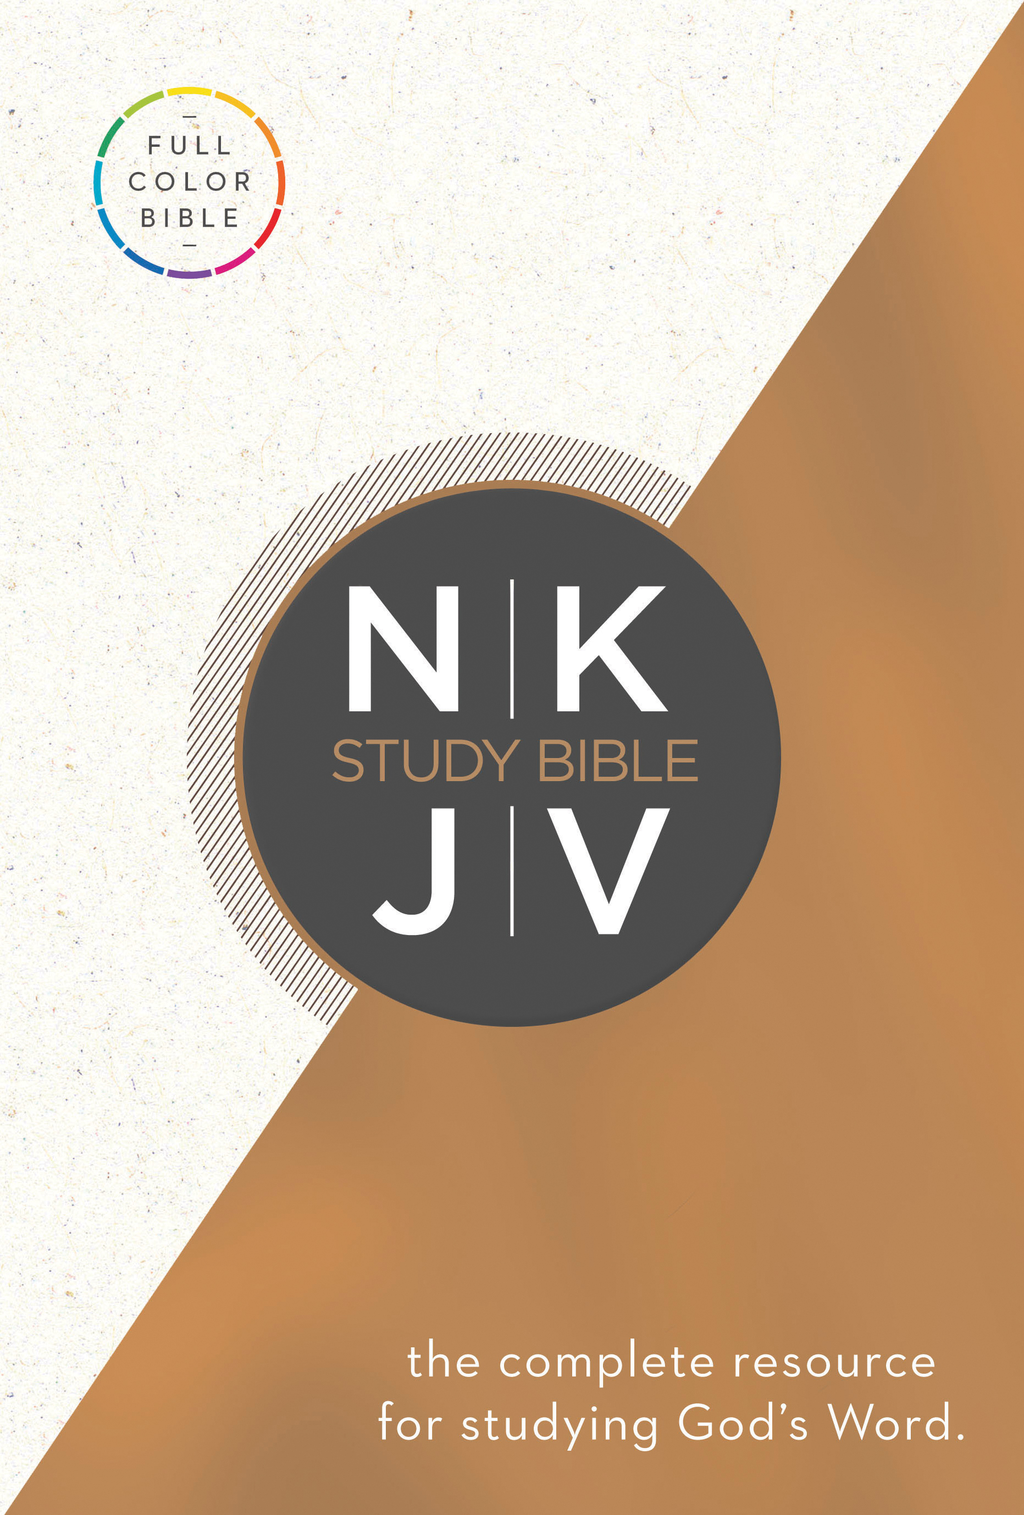 The NKJV Study Bible Full-Color Edition